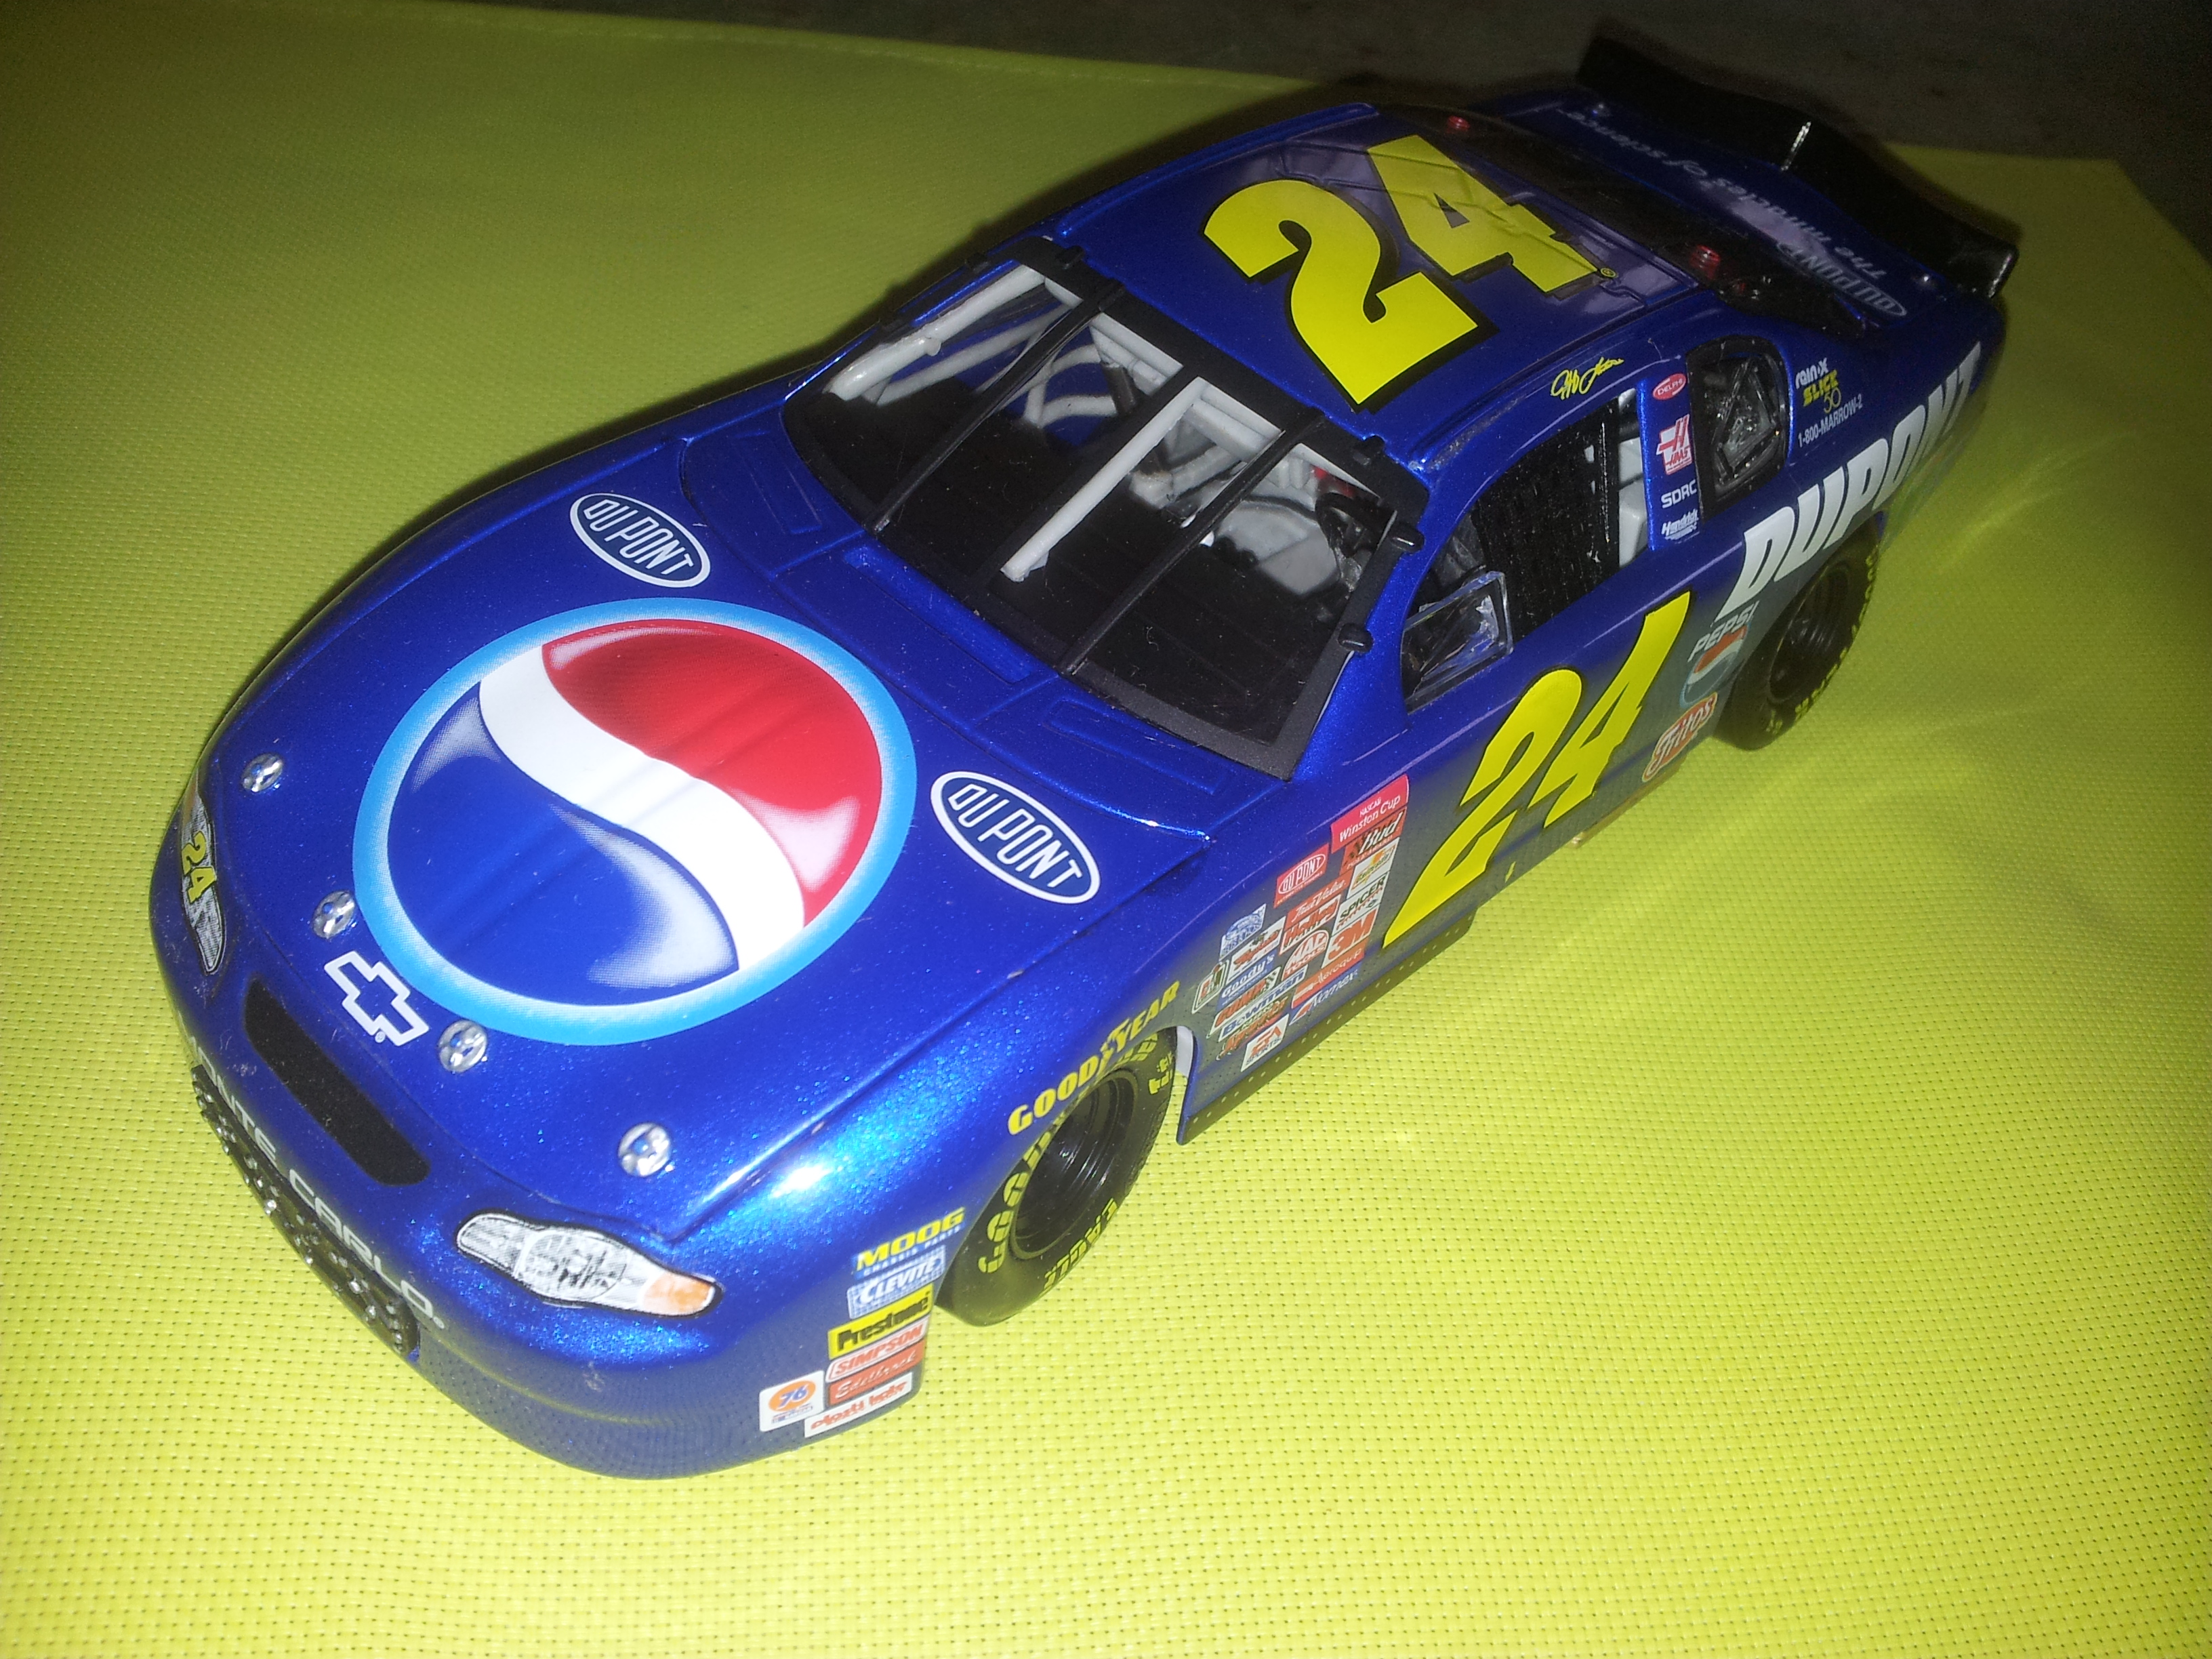 Nascar & Jeff Gordon's tribute 73159020150210101647